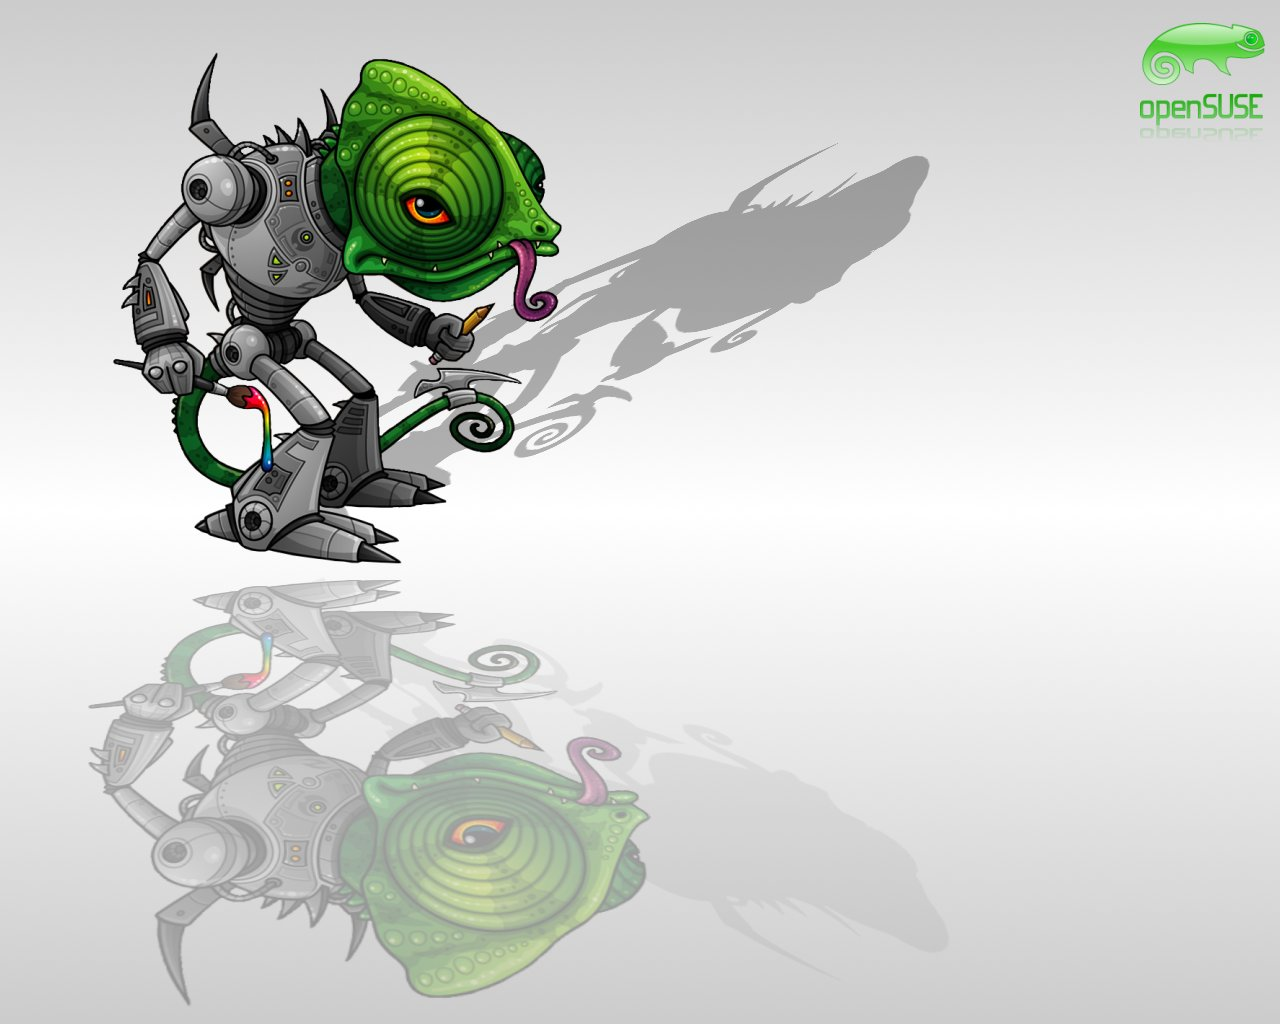 opensuse wallpapers